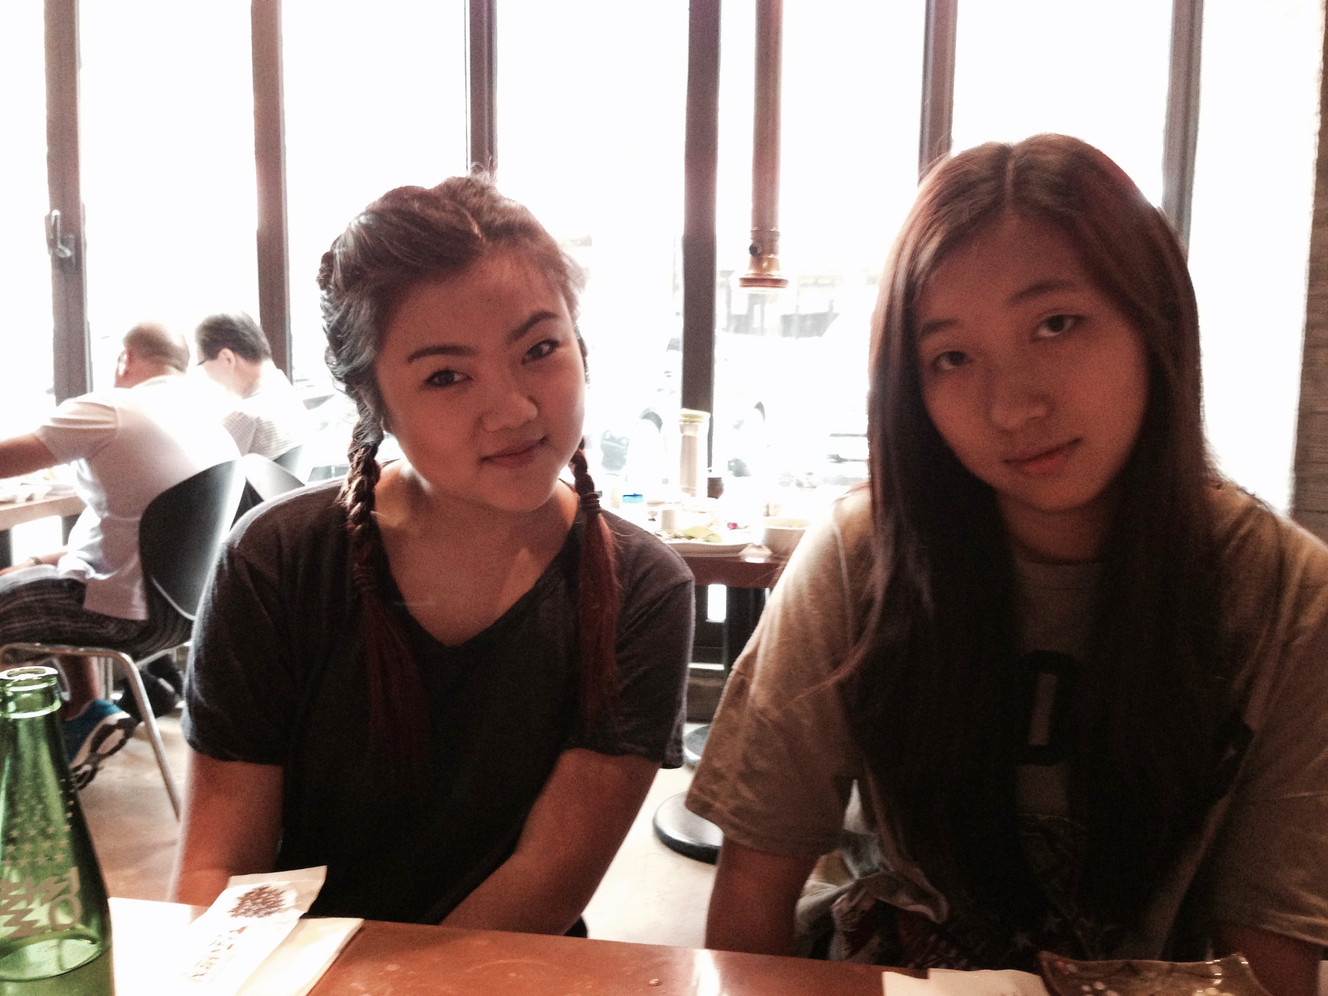 Late Lunch with these girls @ 이태원